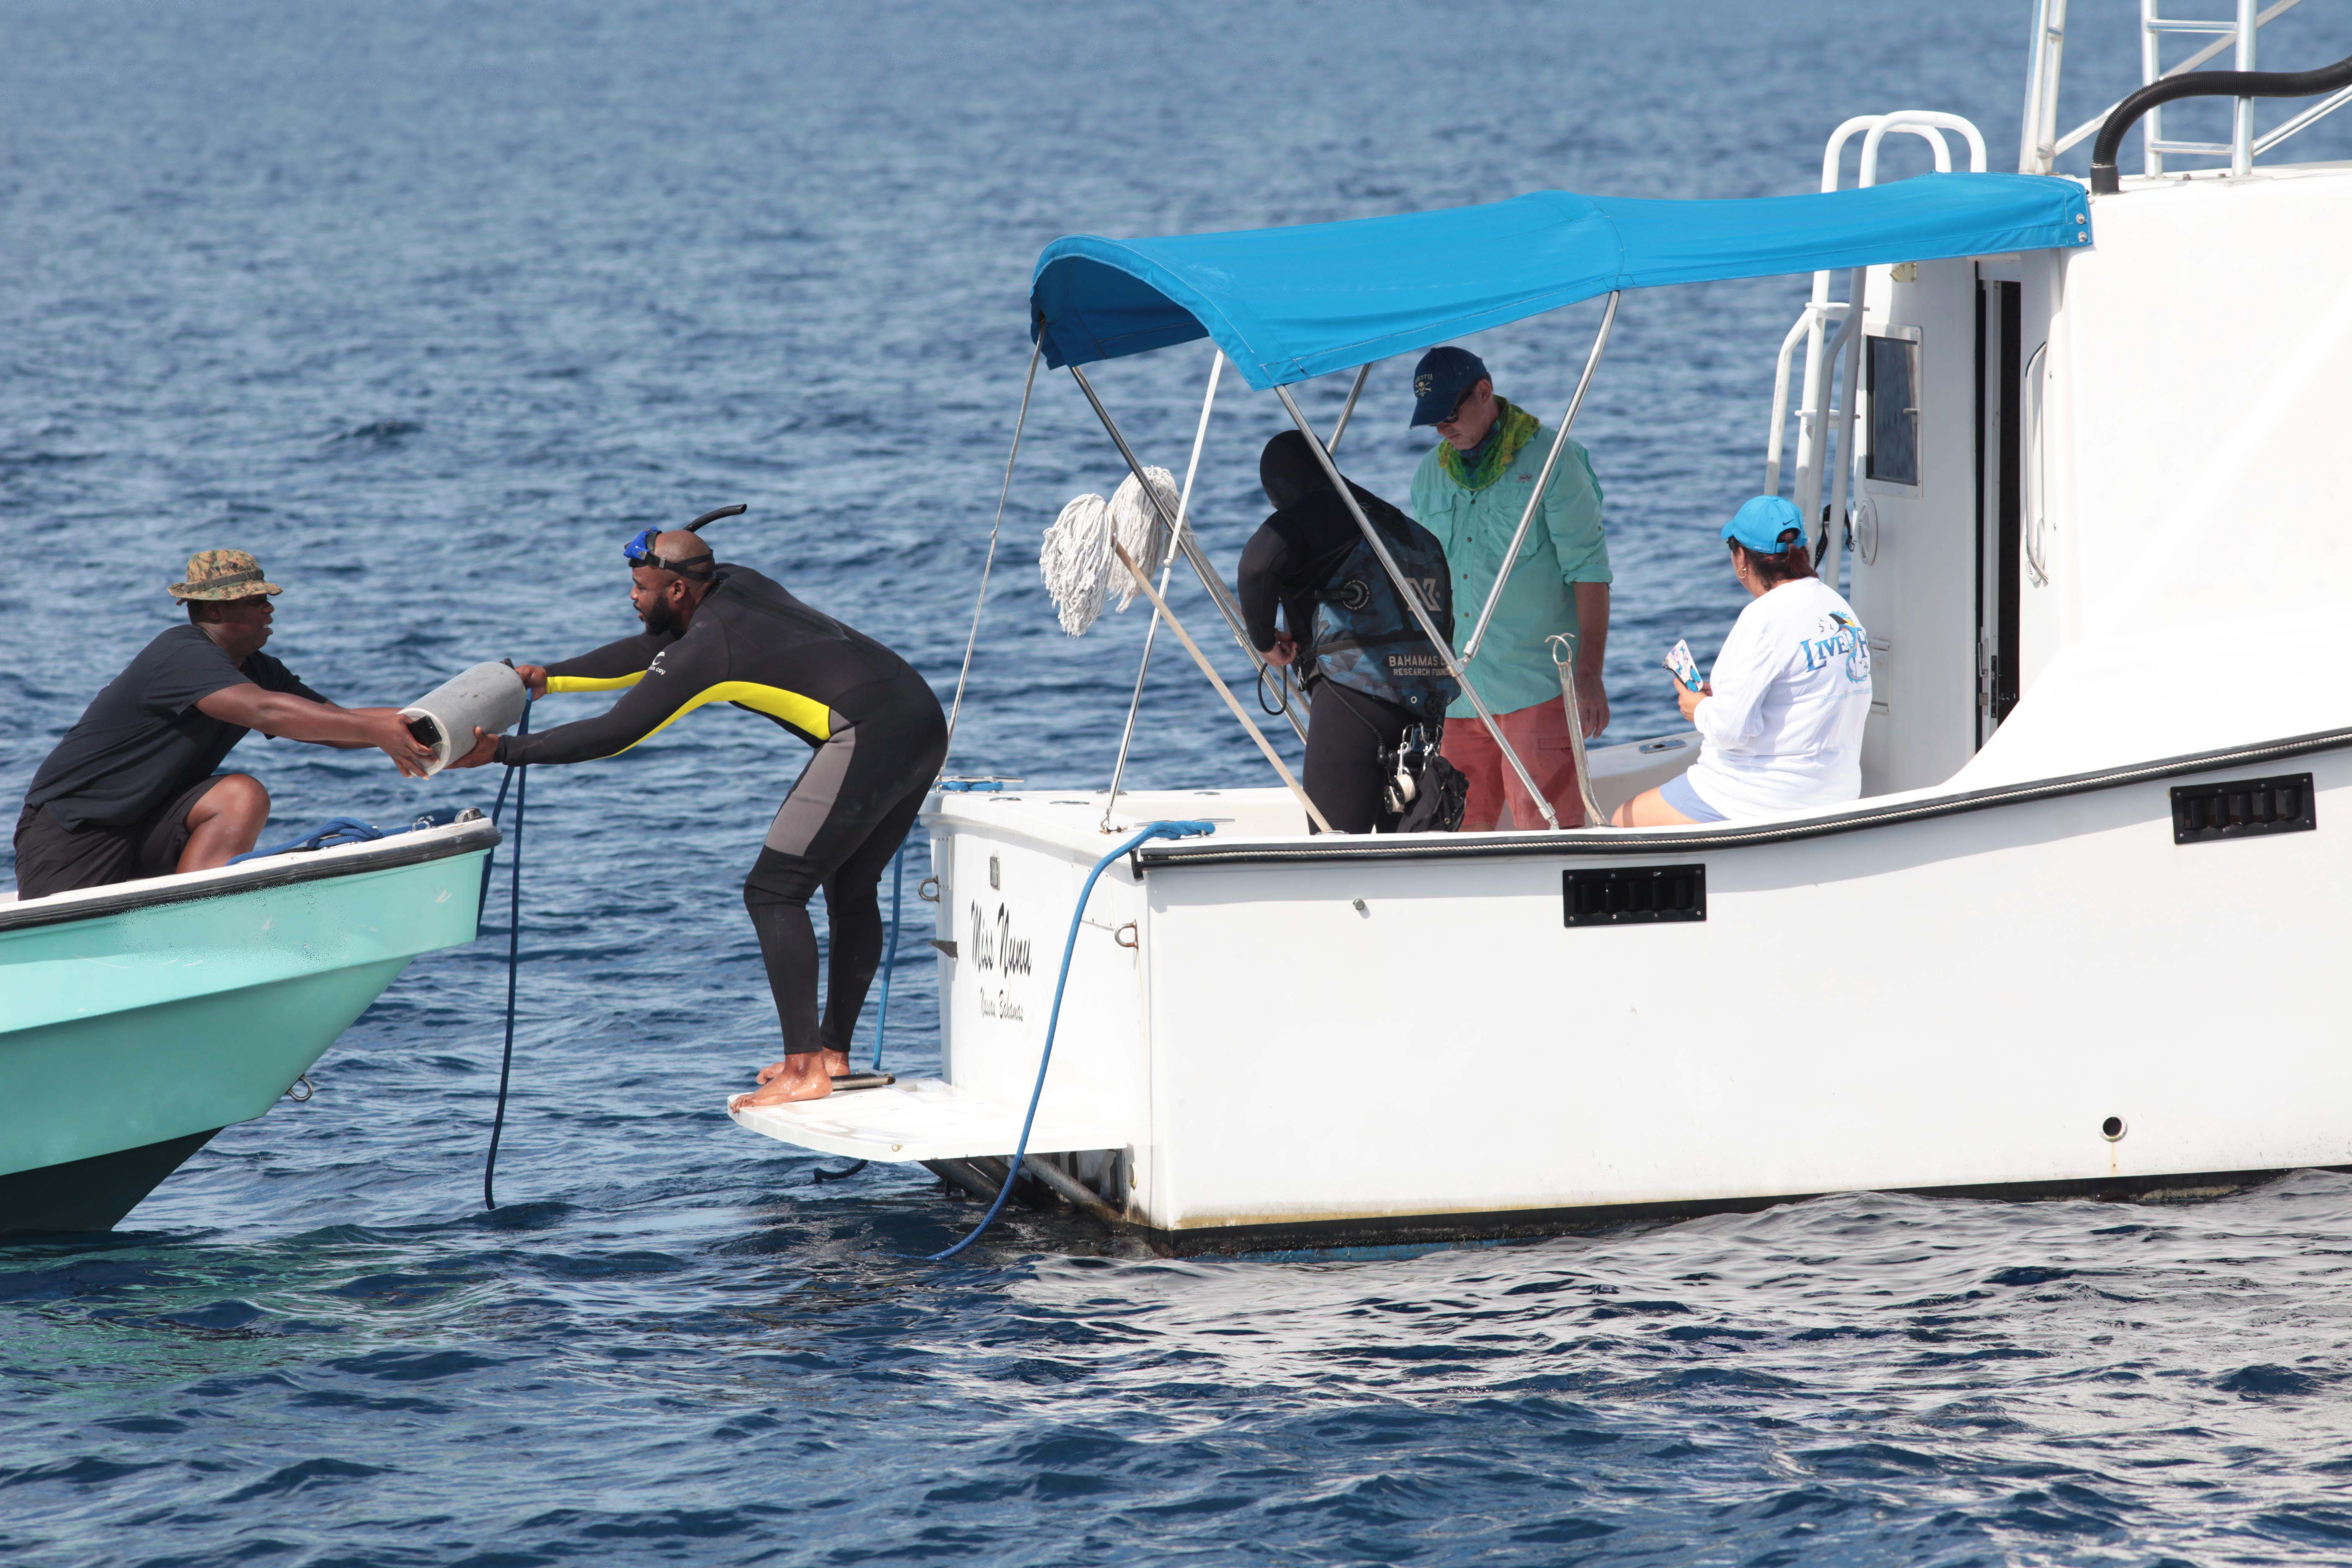 RBDF scales back search, recovery efforts for pilot, plane